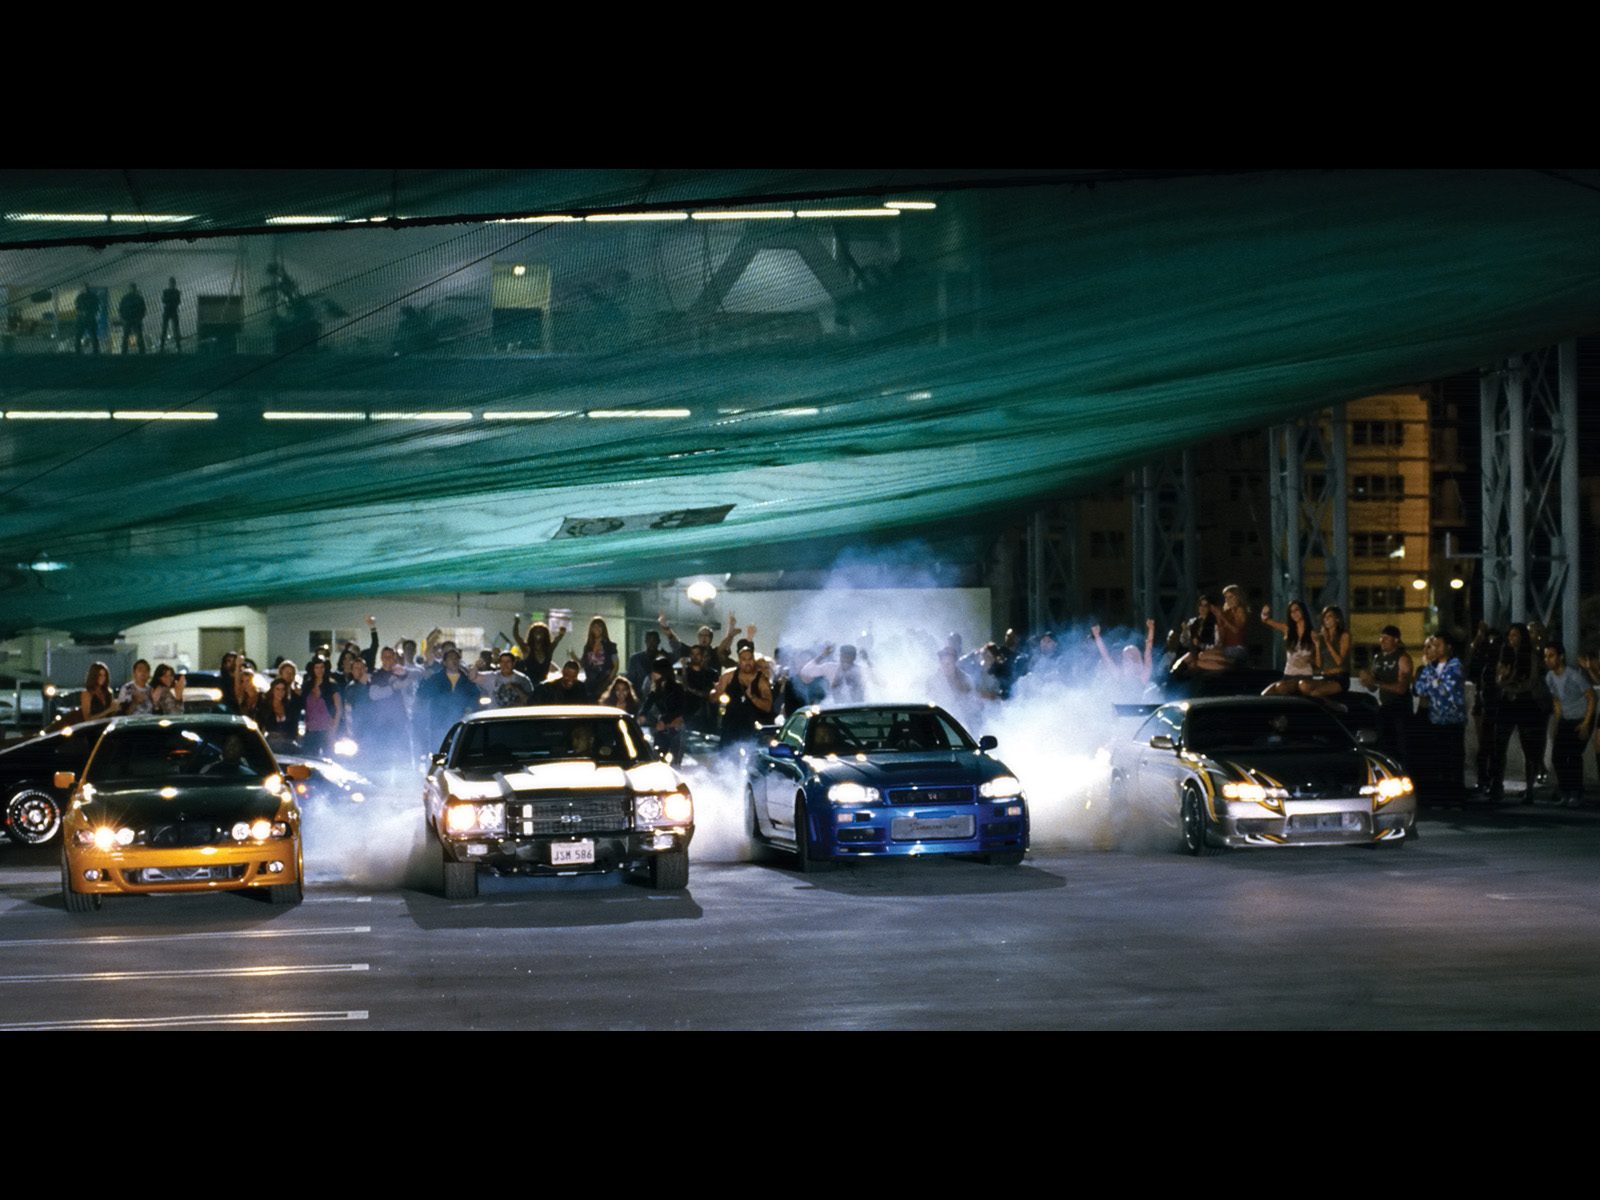 Fast And Furious Movie Cars Race 1600x1200jpg 1600x1200